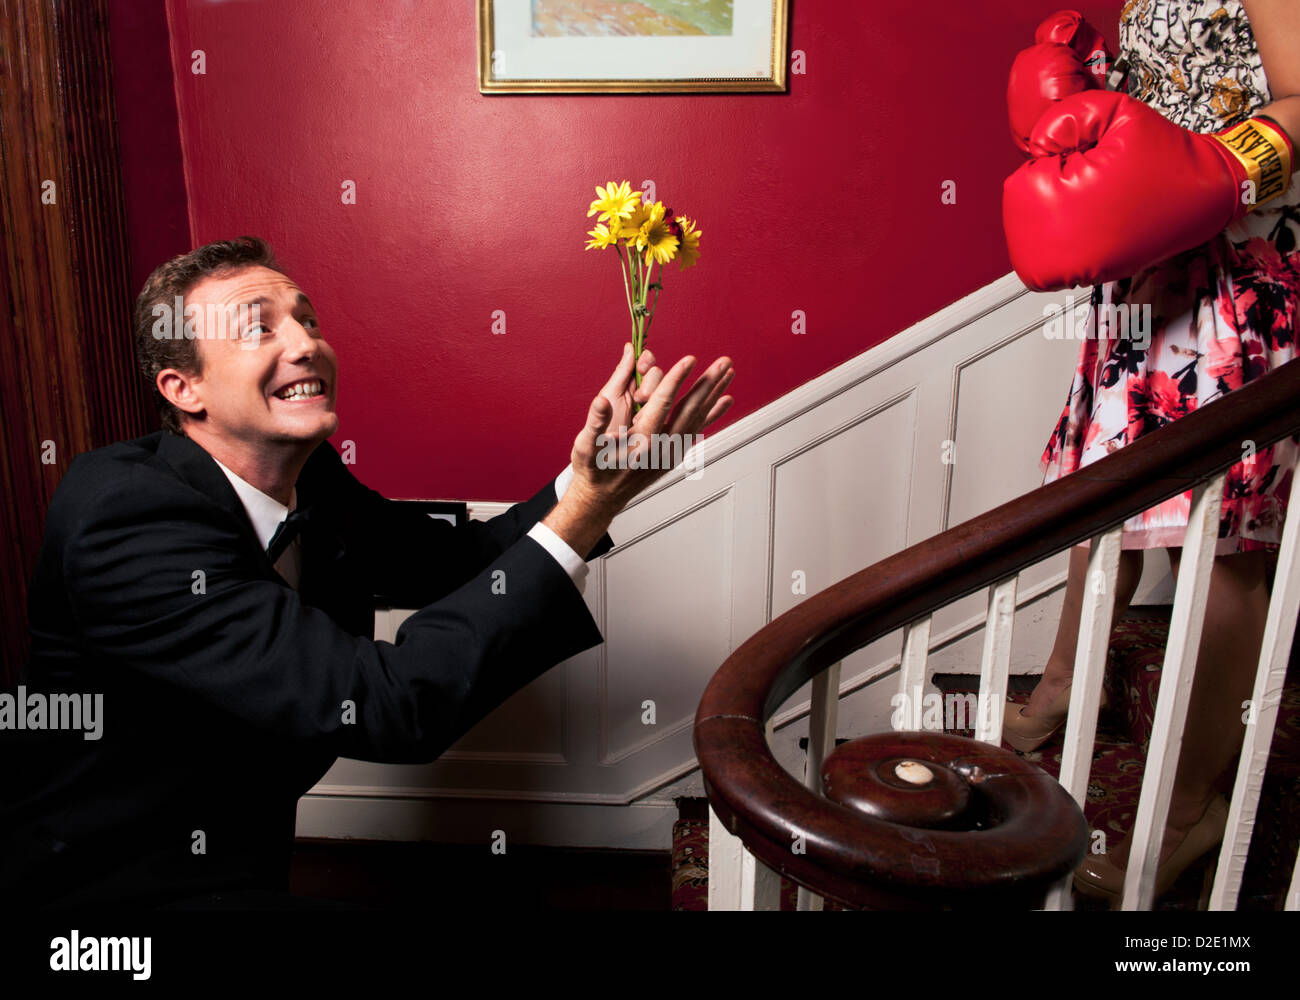 Man bringing home flowers to a woman wearing boxing gloves implying forgiveness - Stock Image